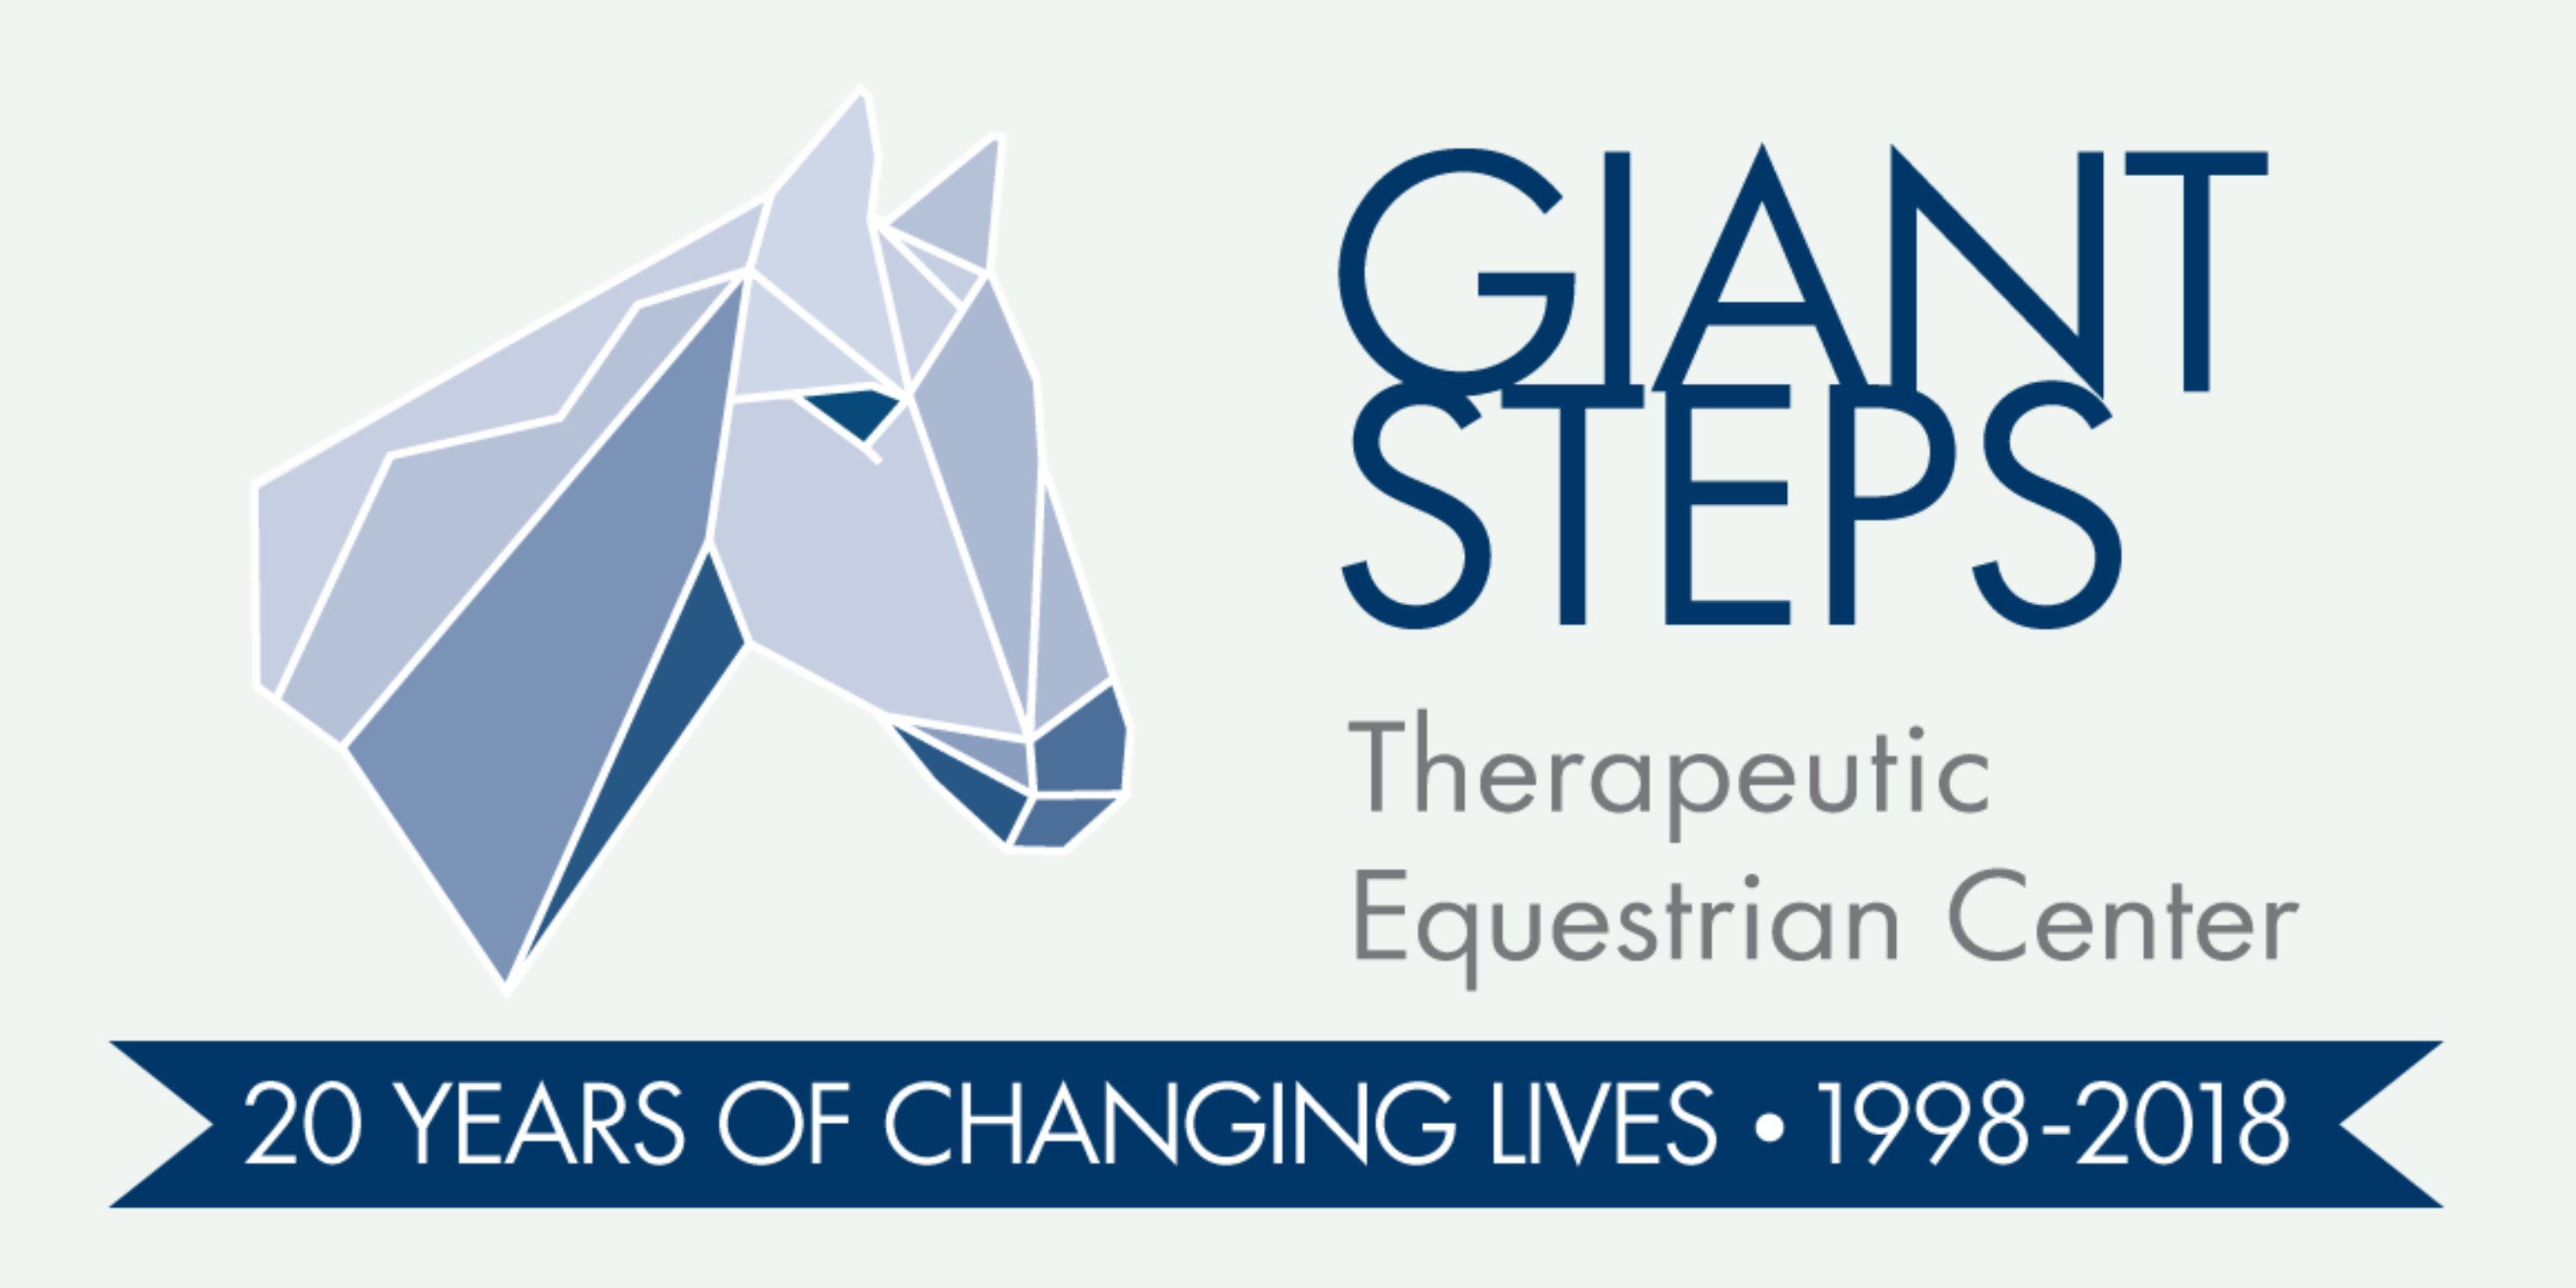 Giant Steps Therapeutic Equestrian Center